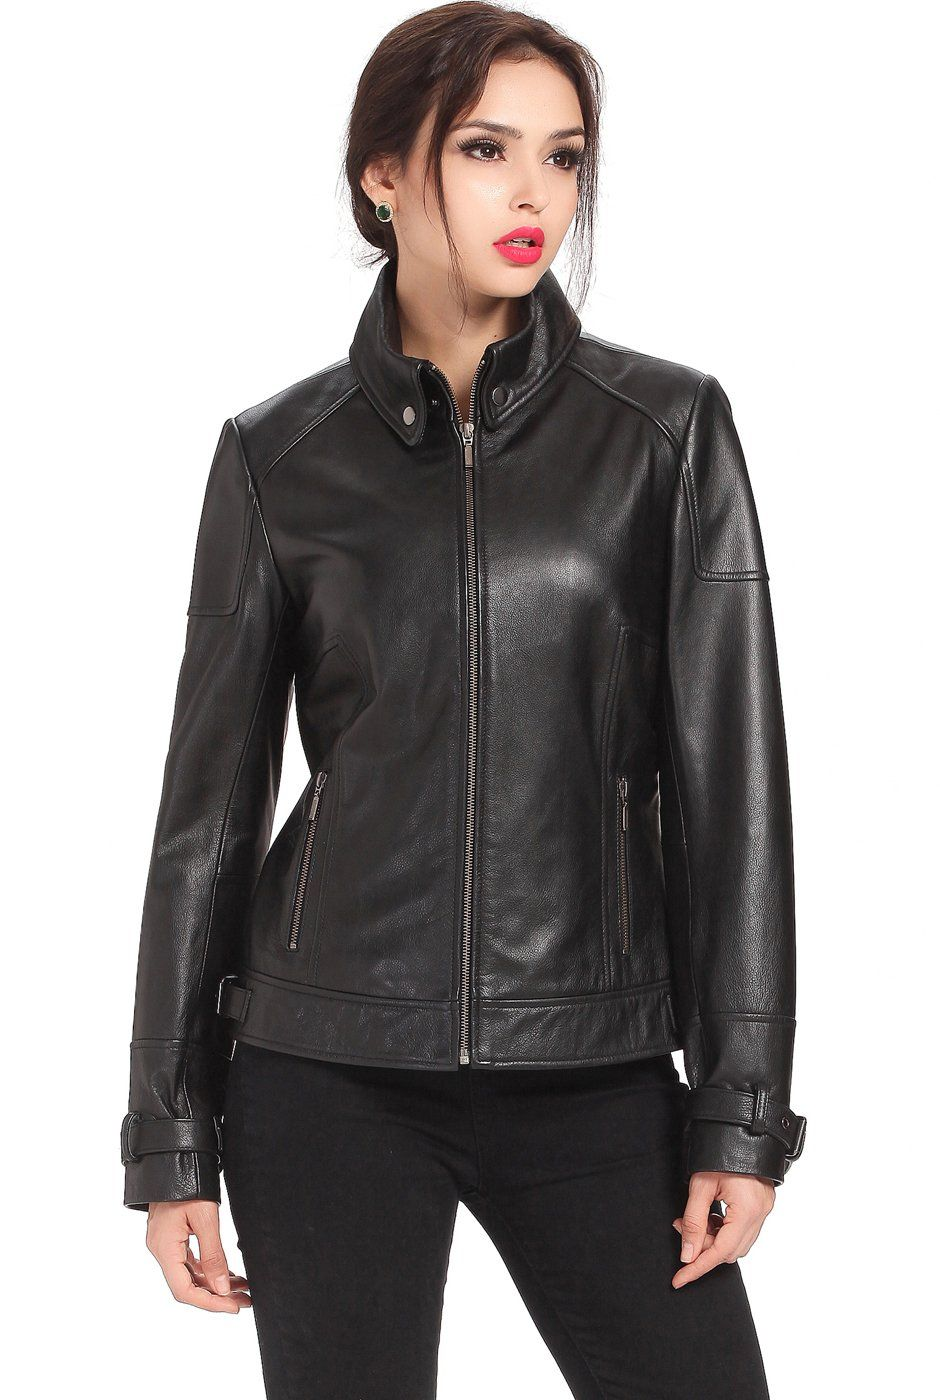 Free People Leather Jacket Size 4! Free people leather